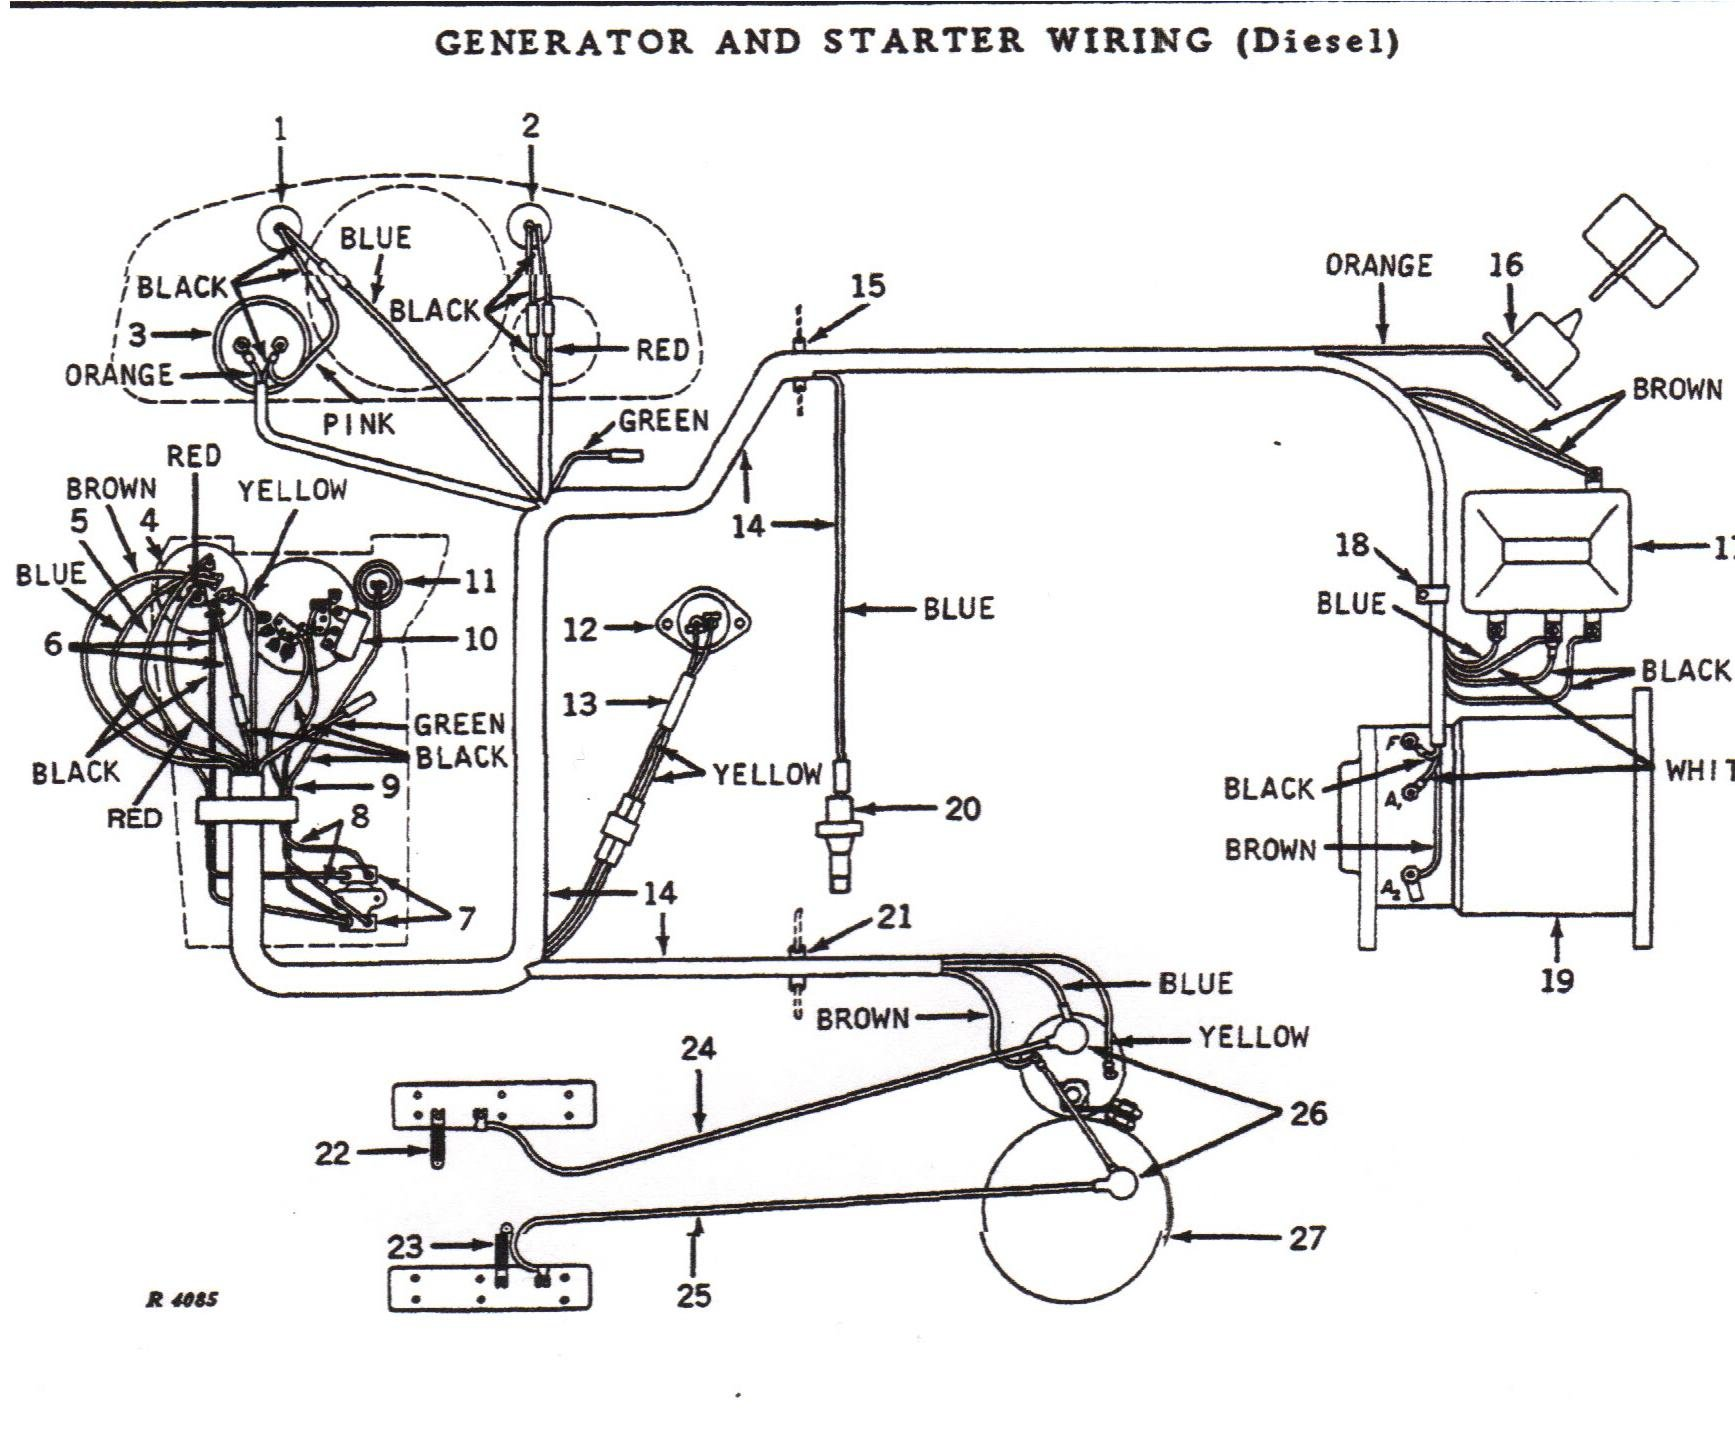 John Deere 4020 Wiring Diagram on john deere wiring schematics